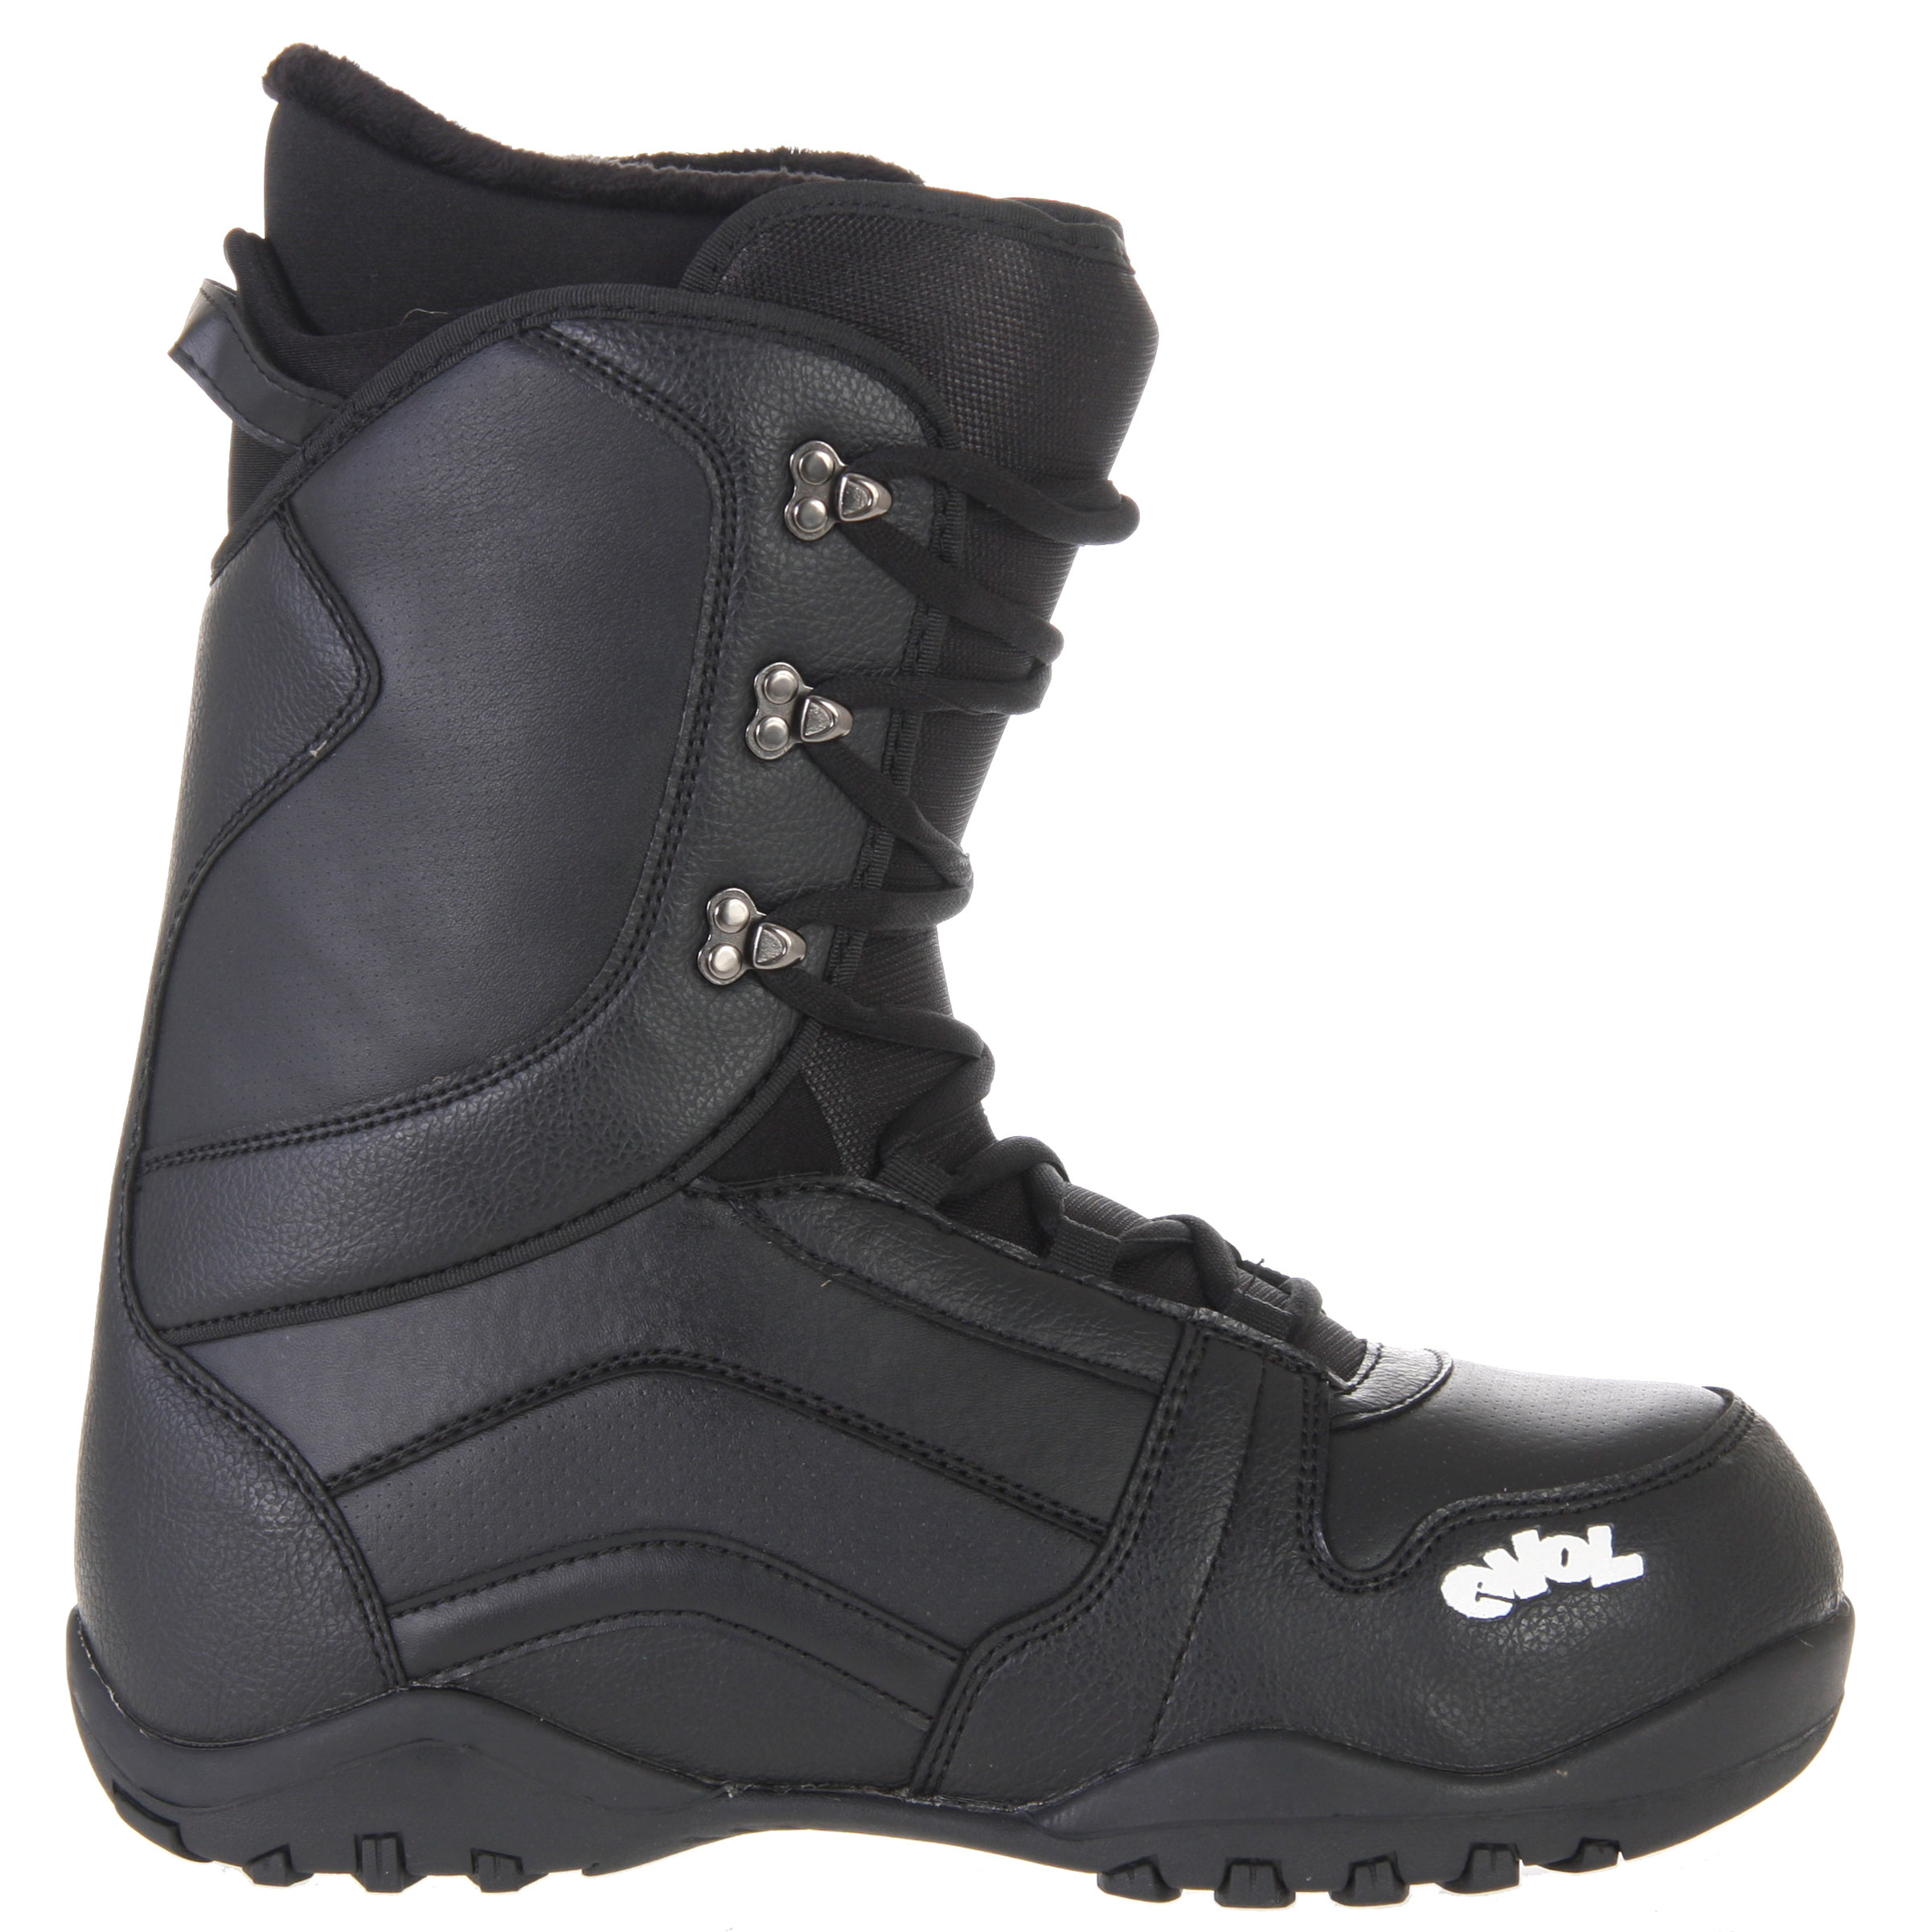 "Snowboard Humans have evolved over millions of years, at least according to ""scientists!"" In that spirit of progression, these Evol 1080 Snowboard Boots are a step up along the evolutionary ladder. They have a lace-up liner for maximum temperature management and comfort, with a molded backstay for maximum heel and leg comfort and a rubber 2-piece sole for cushion. Slip these black beauties into your bindings and be prepared for a full day of hitting the slopes and shredding.Key Features of the Evol 1080 Snowboard Boots: Deluxe lace up liner Race lace system Molded TPR backstay Phylon and rubber 2 piece sole - $77.95"